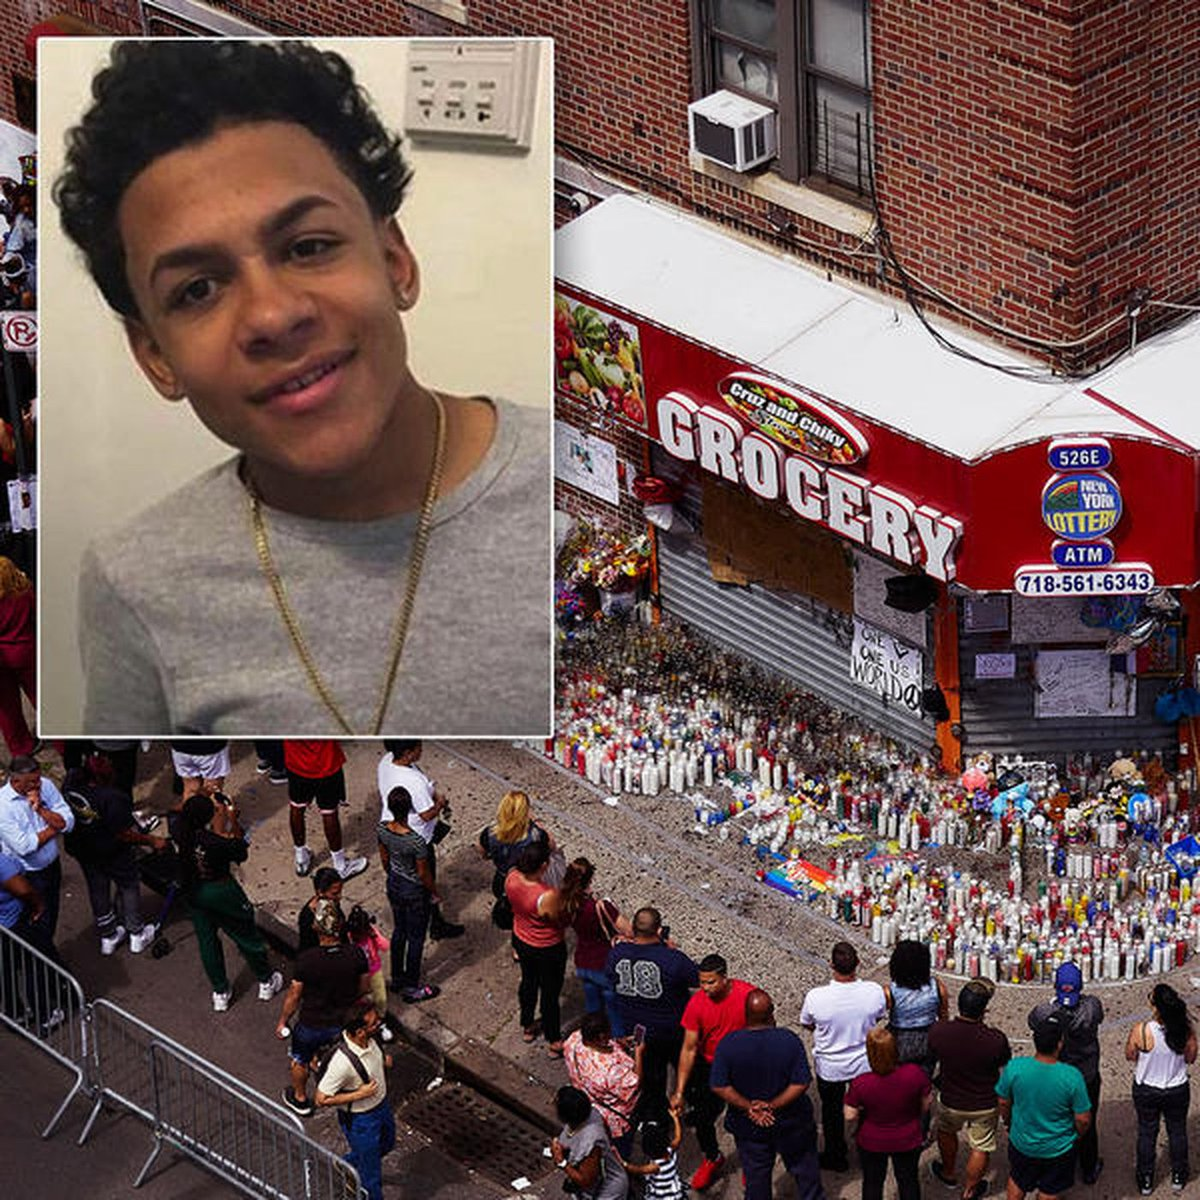 A Bronx bodega should shut down after workers failed to help the teen killed in a brutal gang machete attack, @NYCCouncil members demand #JusticeForJunior https://t.co/jOfFlYjsNs